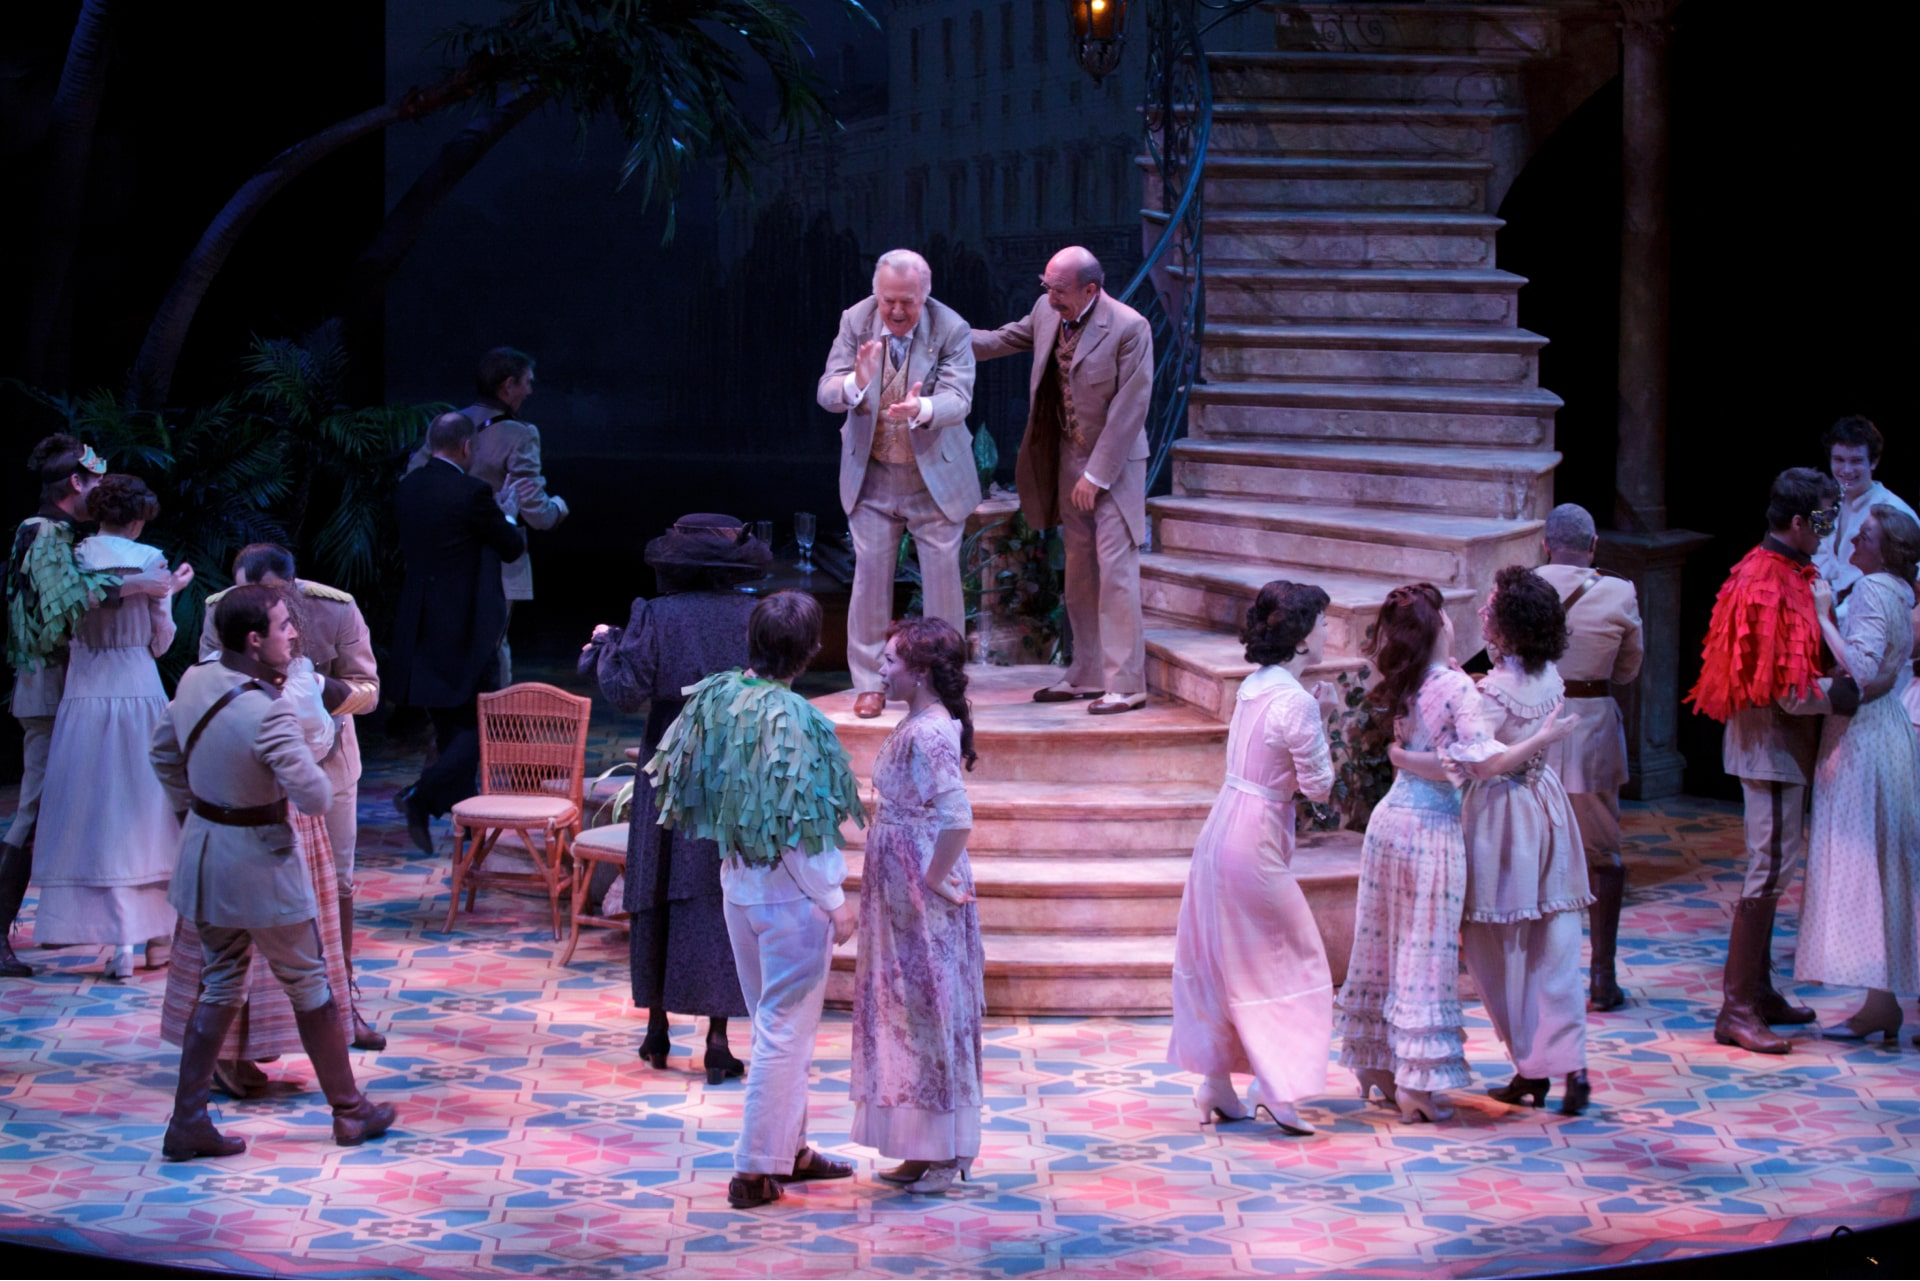 Older men laugh on stair landing, surrounded by dancing couples below.